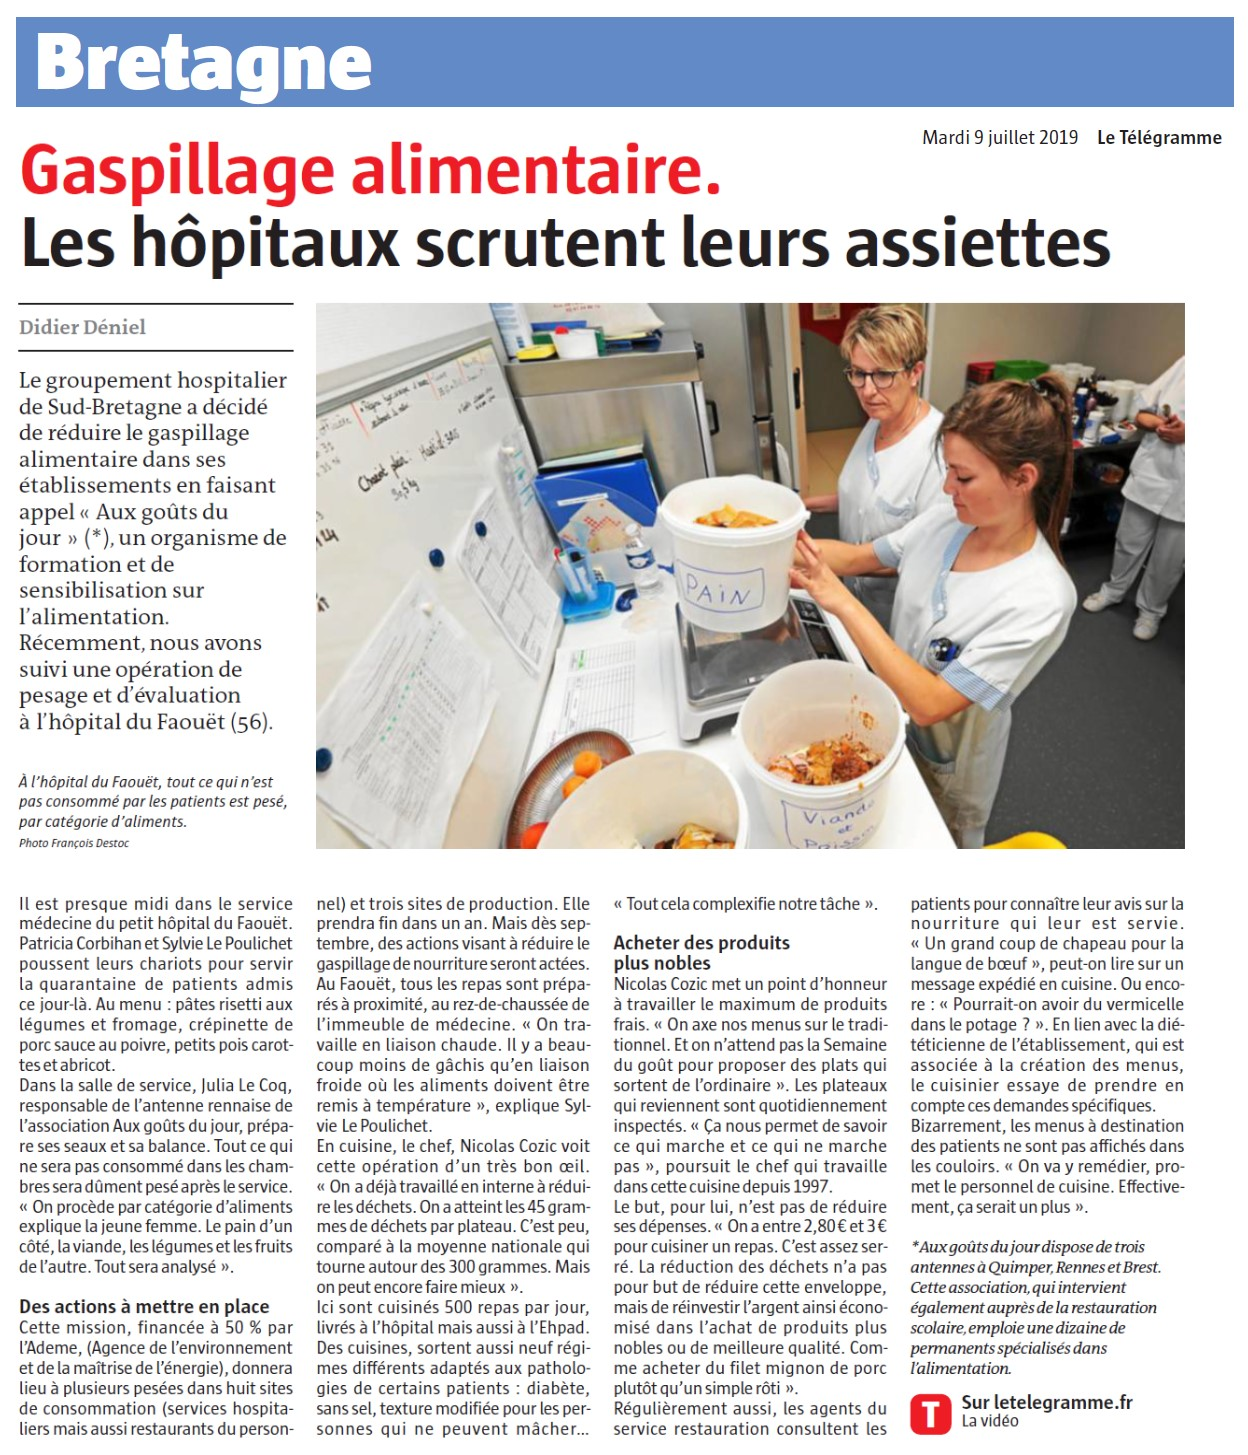 Diagnostic hôpital gaspillage lorient